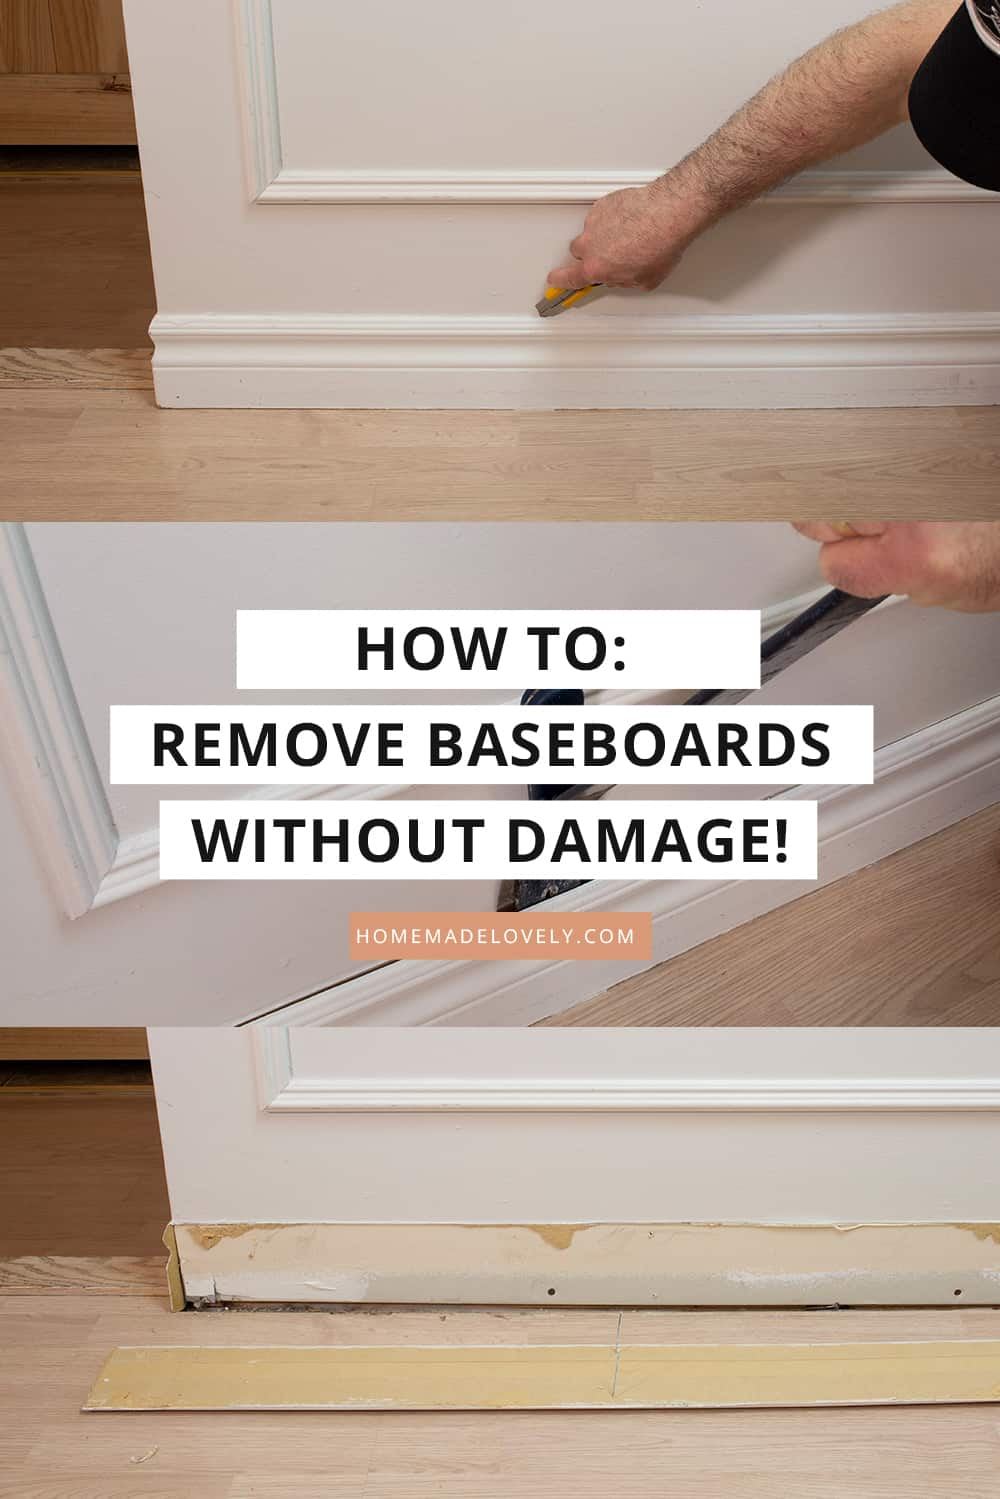 three images showing the removal of baseboard trim with text overlay for Pinterest